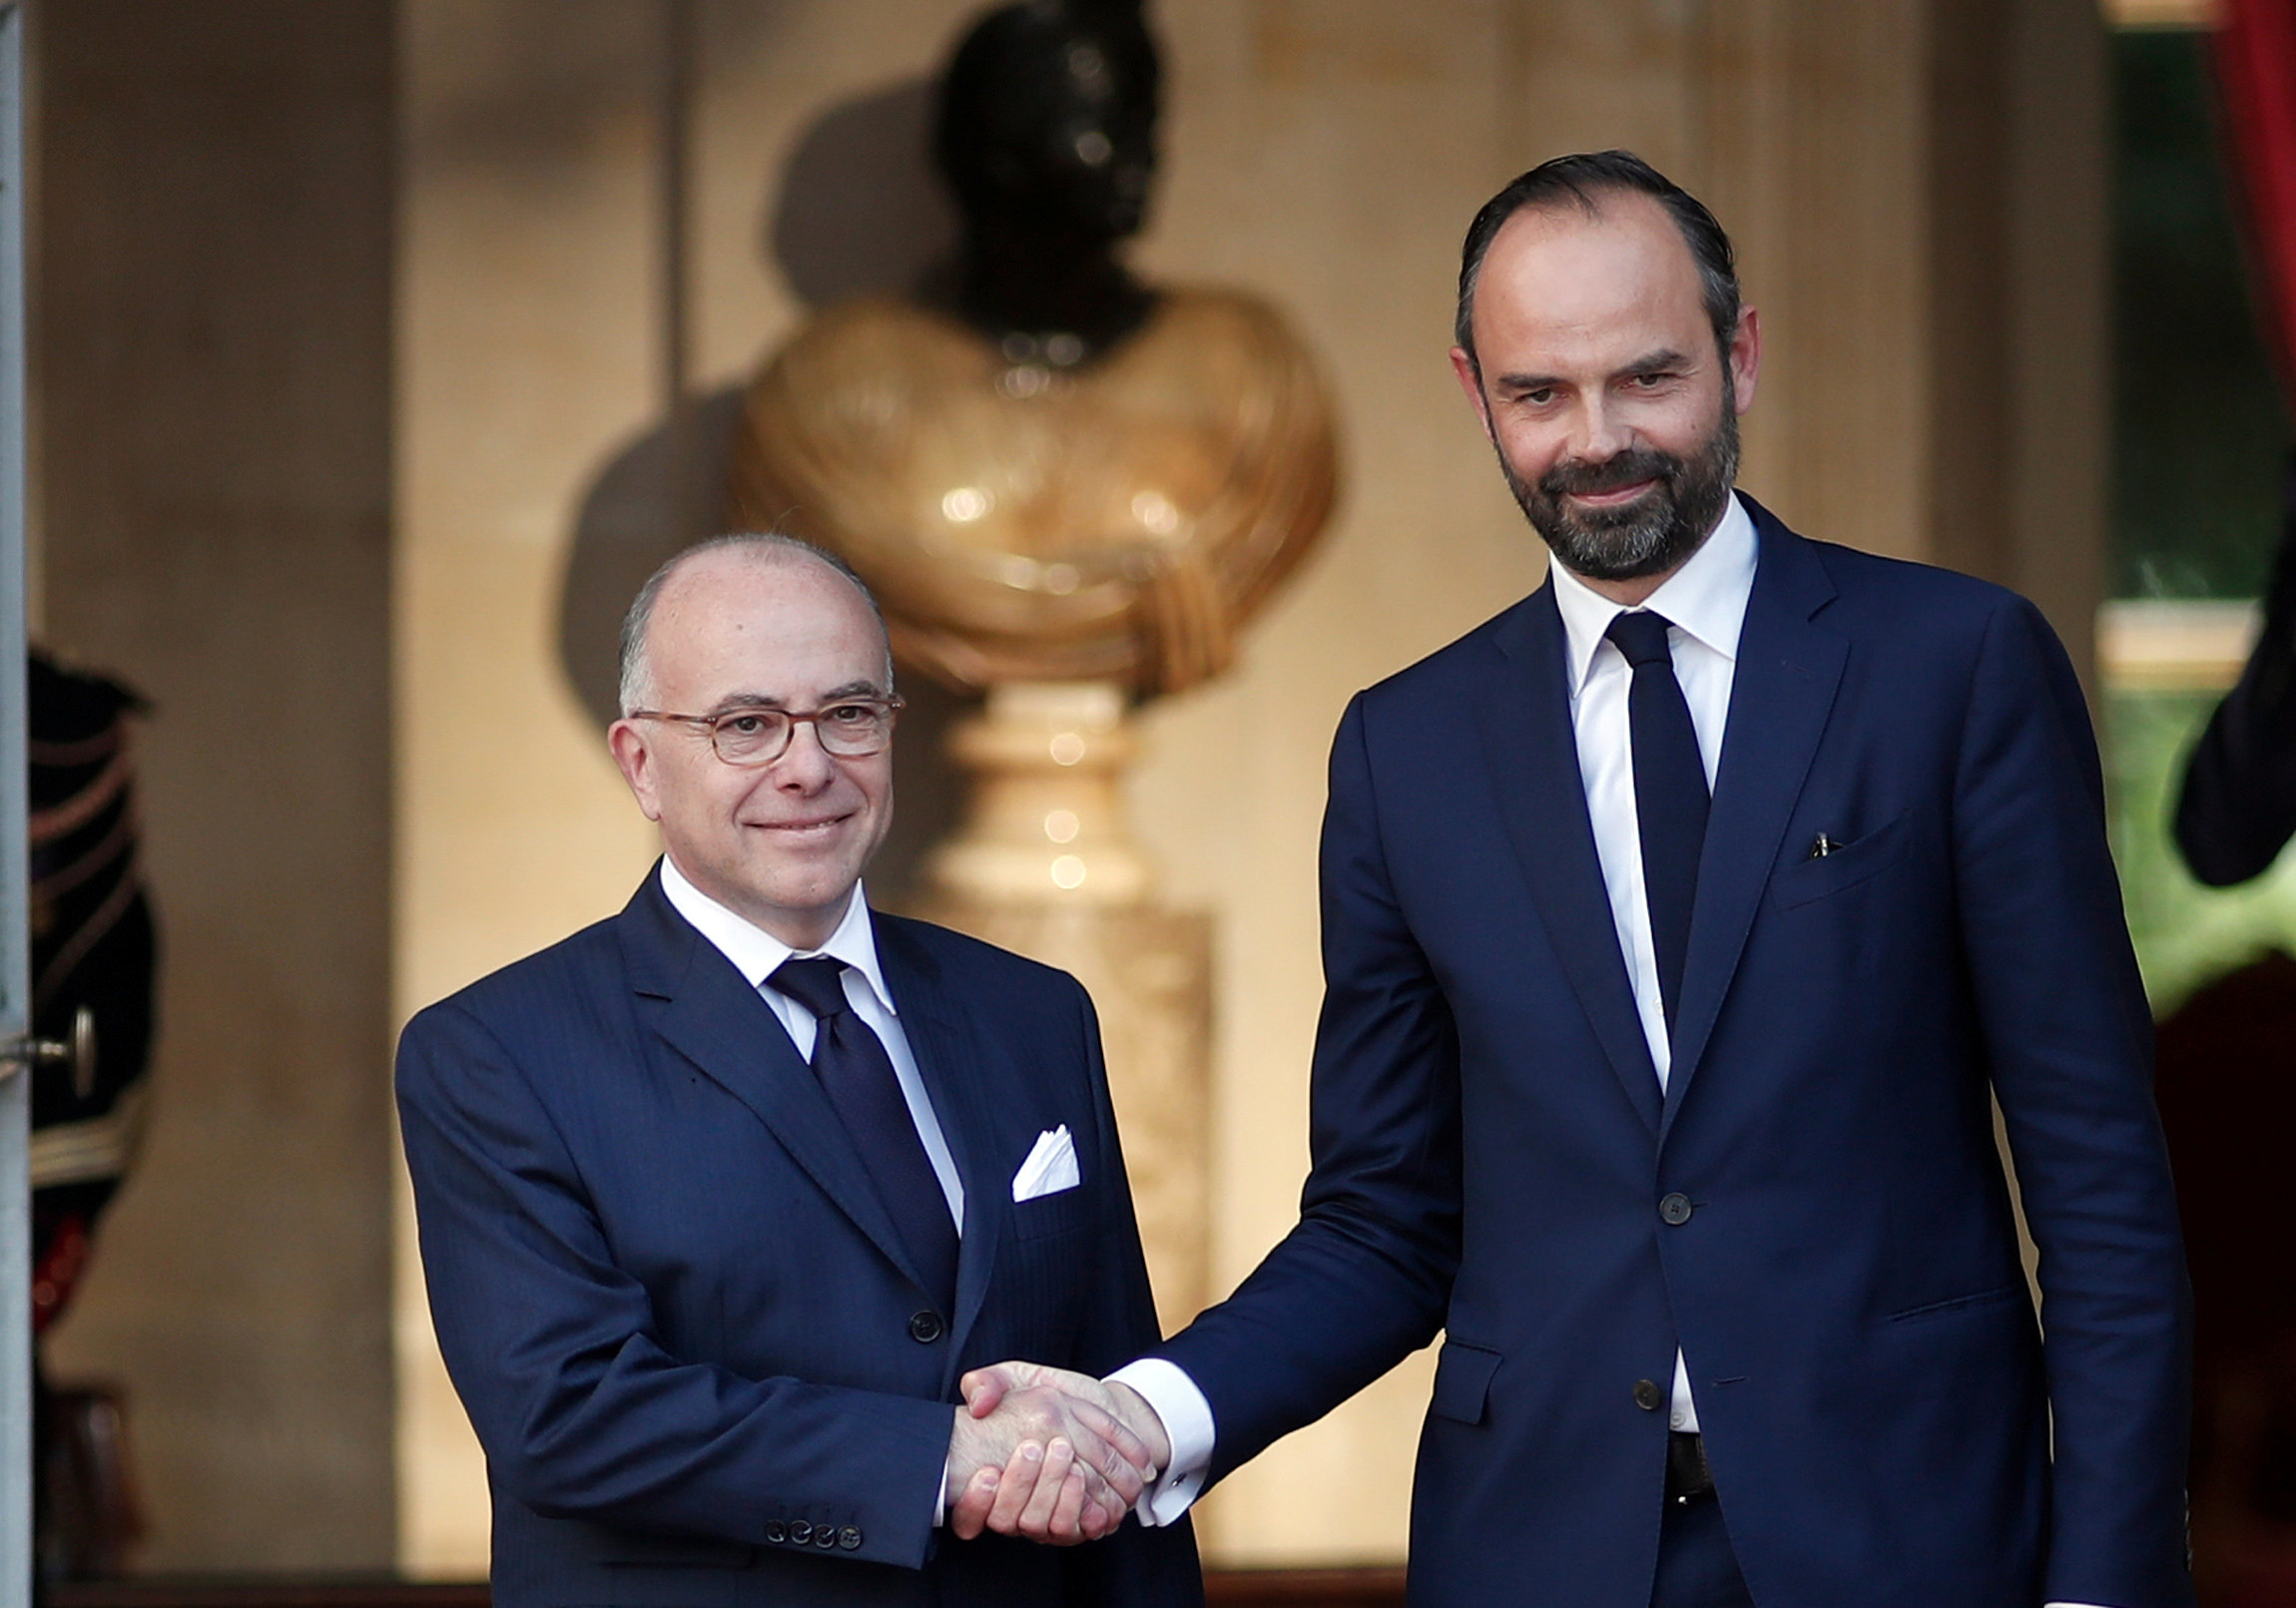 Newly-appointed French Prime Minister Edouard Philippe (R) is greeted by his predecessor Bernard Cazeneuve (L) during a handover ceremony at the Hotel Matignon, in Paris, France on May 15, 2017. (REUTERS/Benoit Tessier)